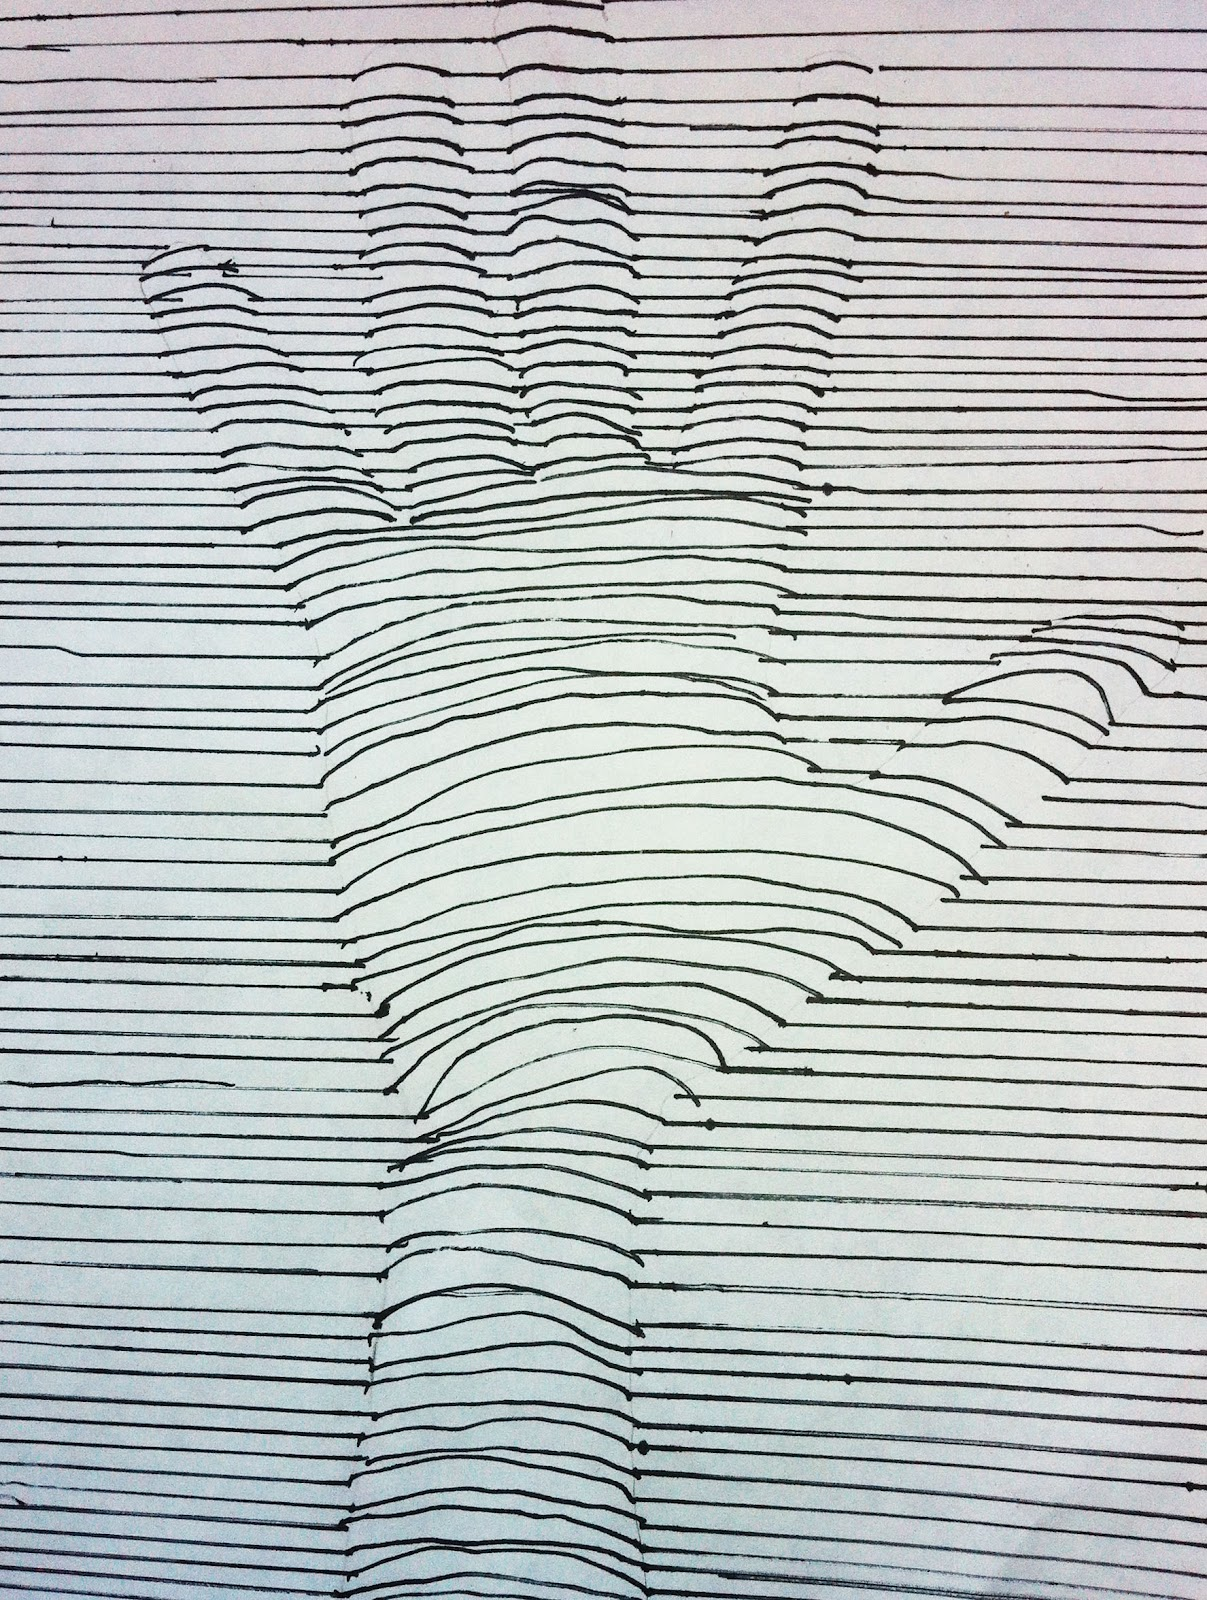 Simple Contour Line Drawing : Sacred heart art room contour line drawings